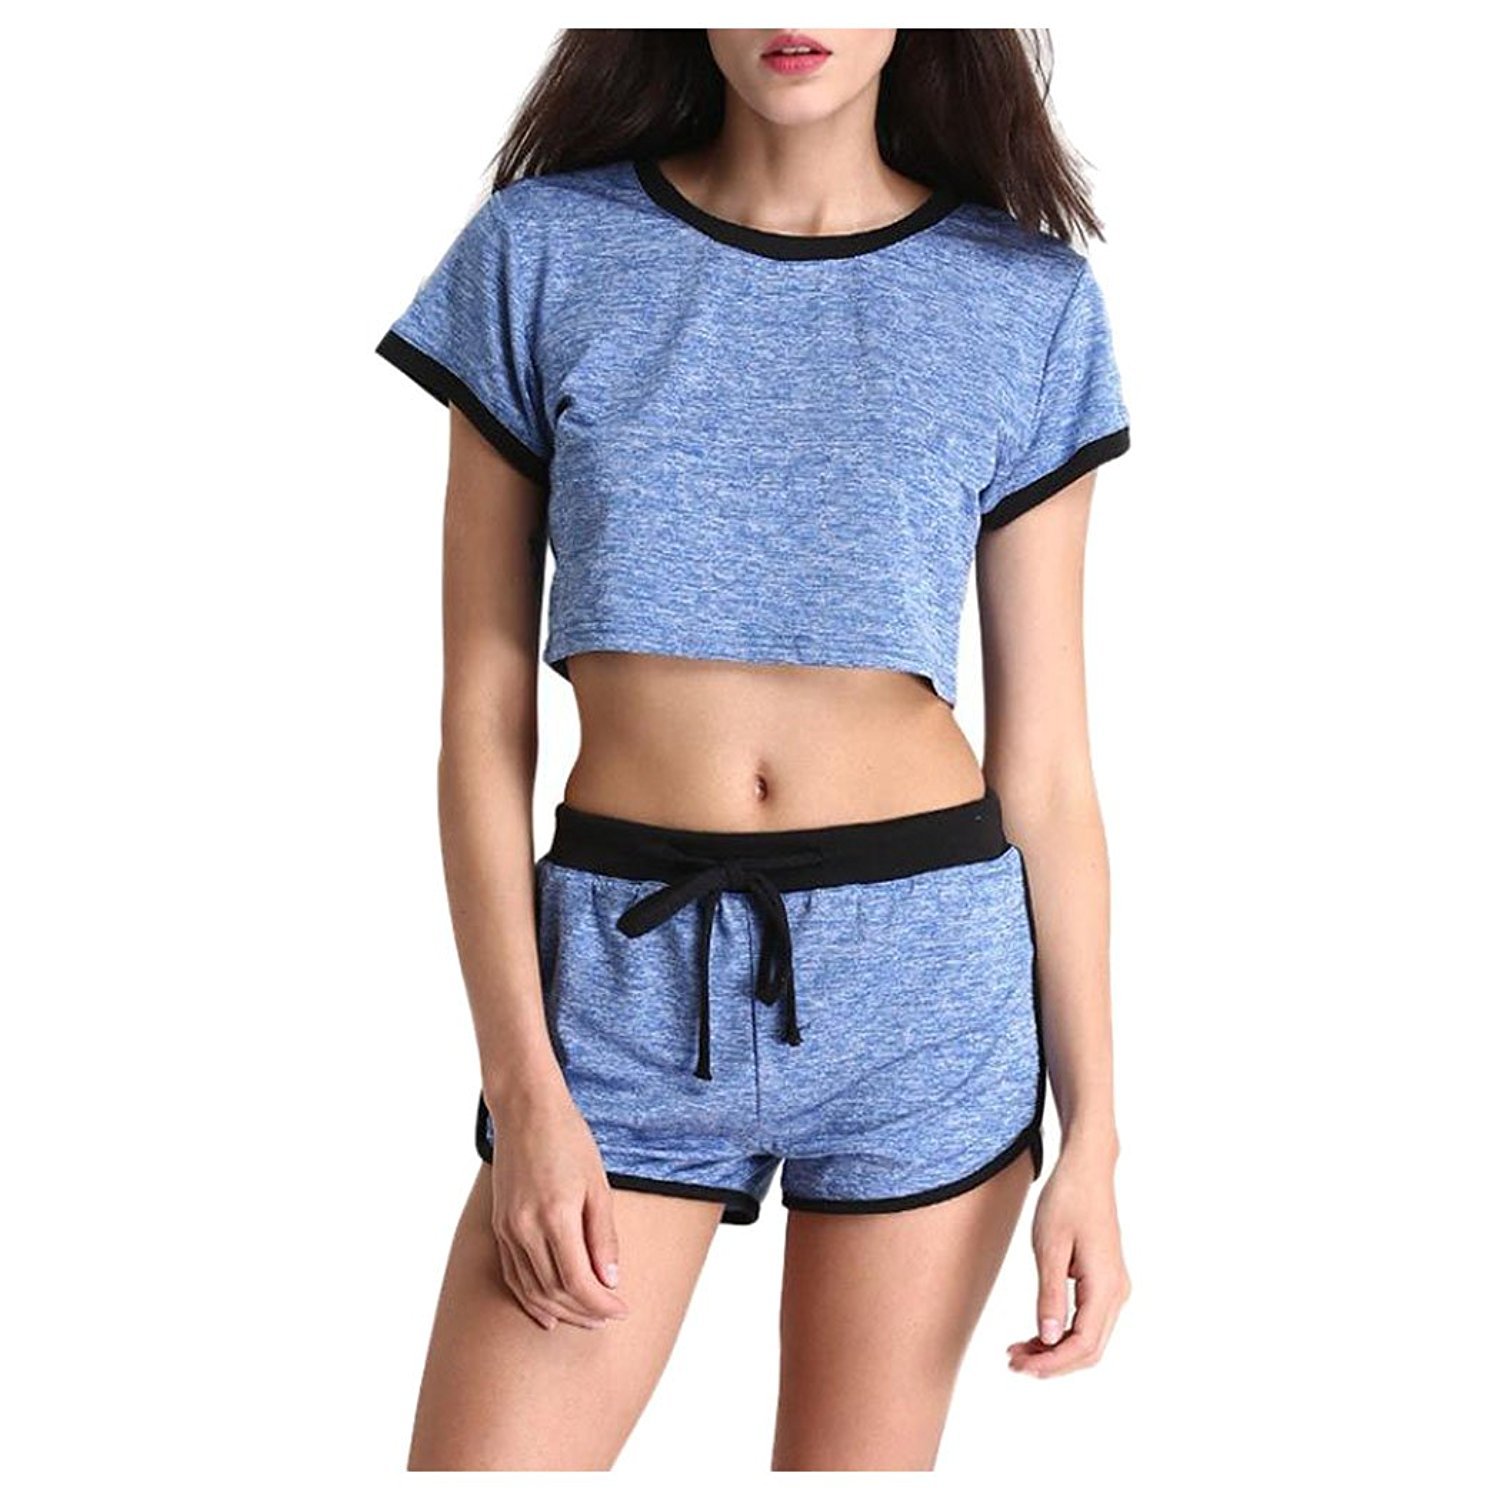 b02981afbe Get Quotations · Womens Yoga Outfits